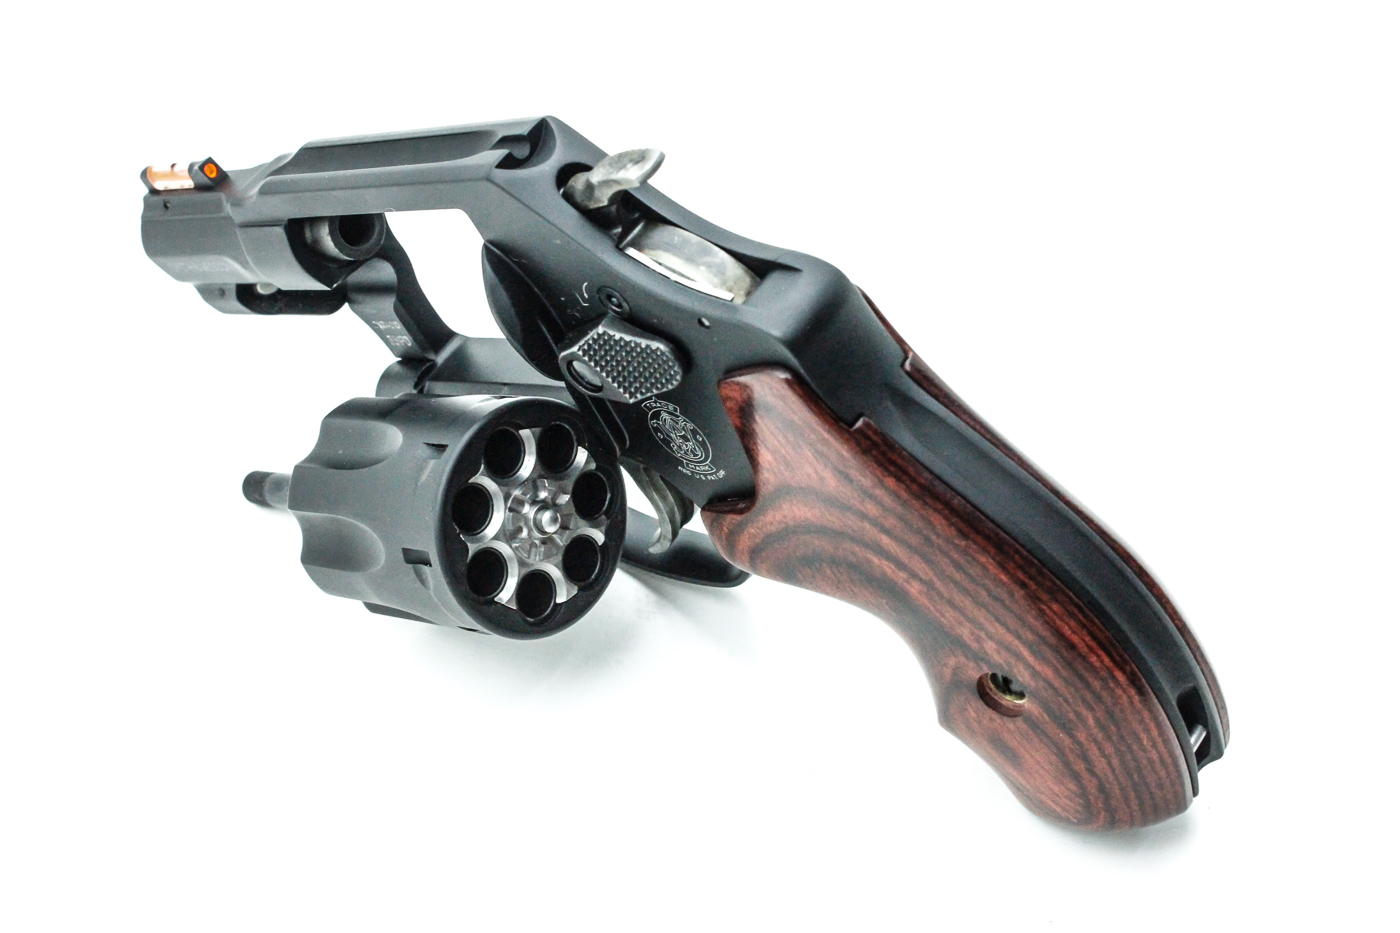 Smith & Wesson 351 PD, .22 Magnum - Image 4